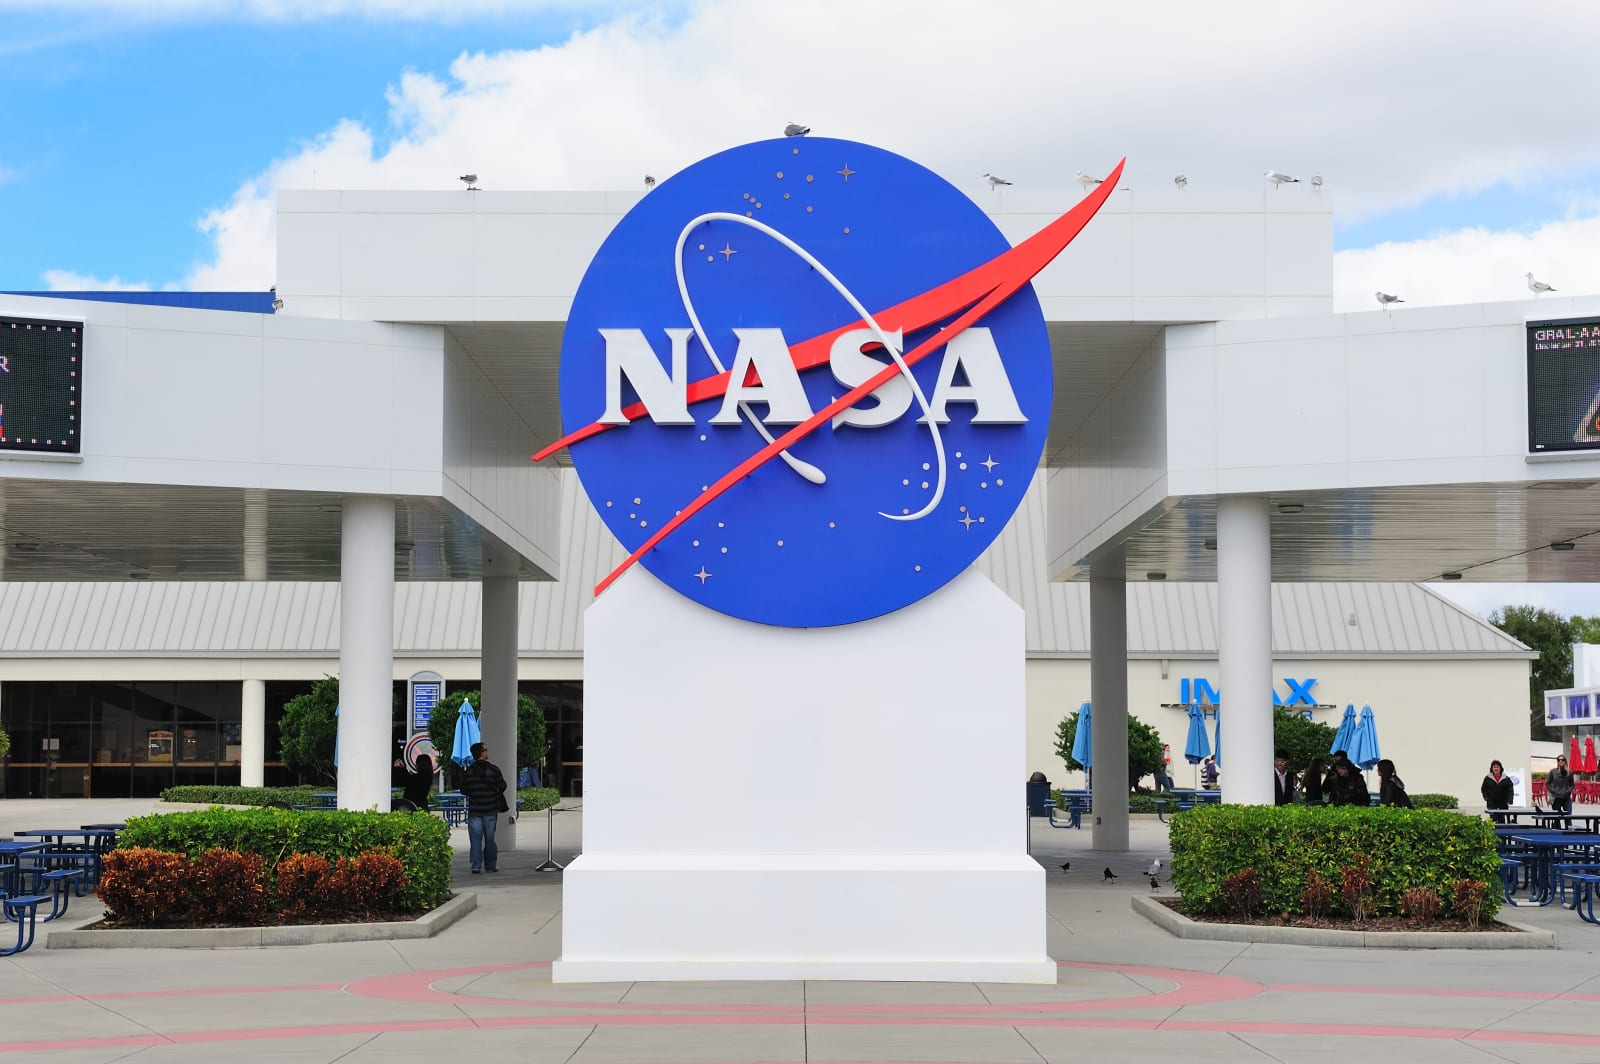 MERRITT ISLAND, FL - FEB 12: NASA logo in Kennedy Space Center on February 12, 2012 in Merritt Island, Florida. It is the launch